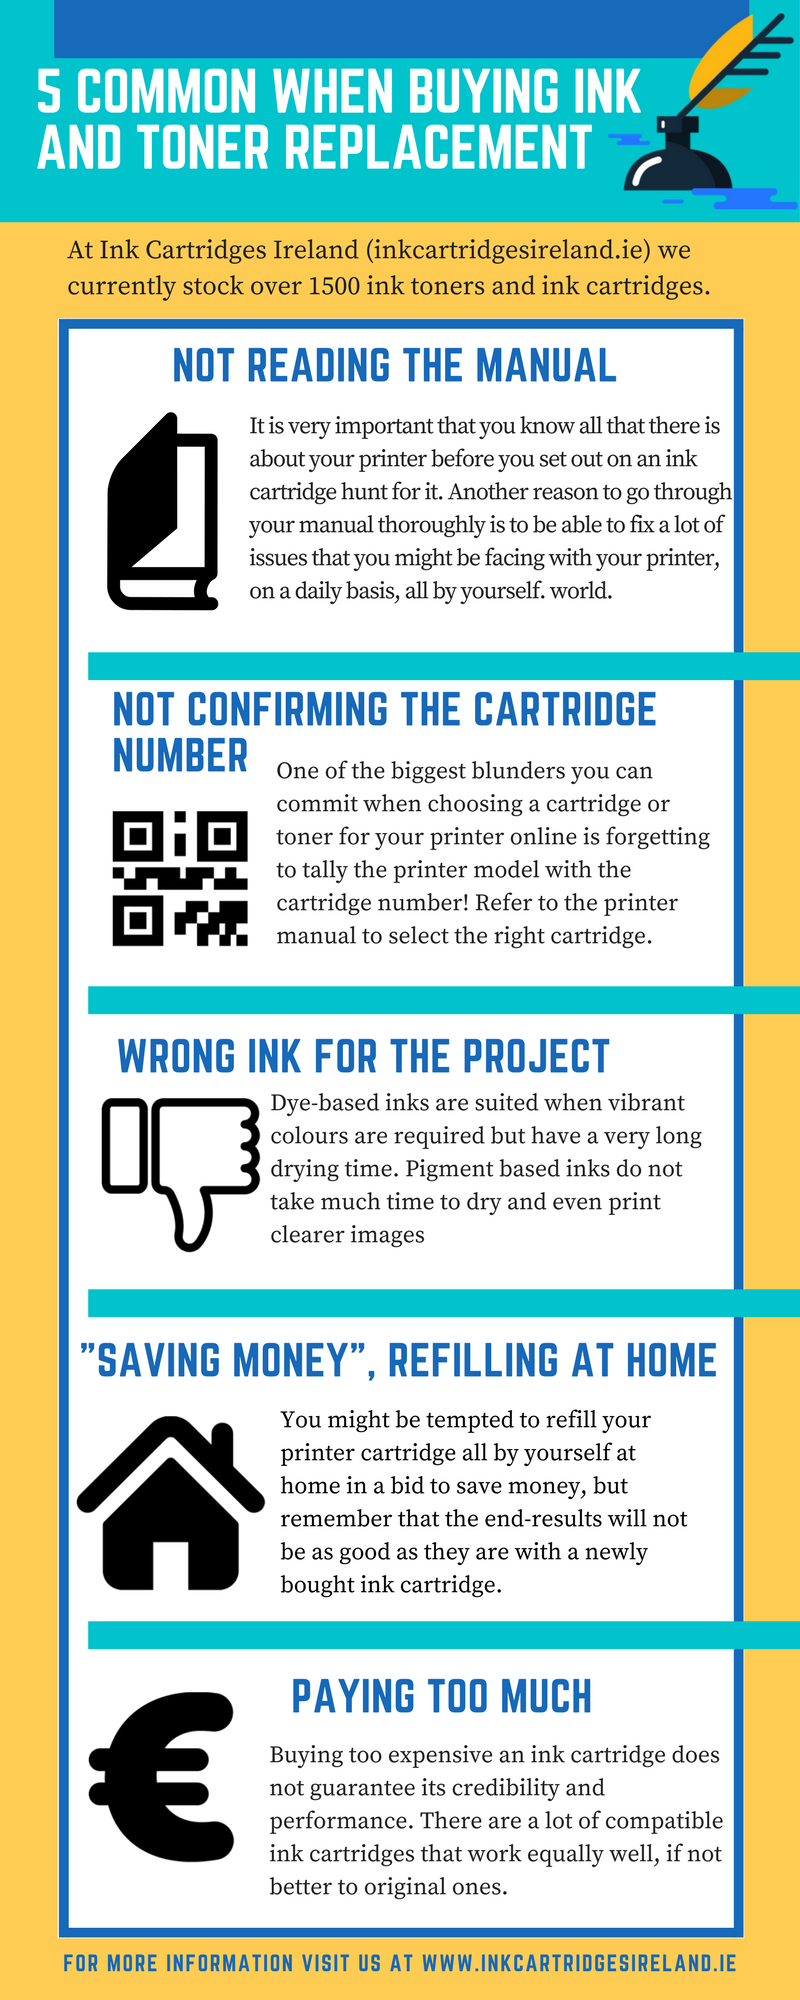 Things to Consider for Ink & Toner Replacement in Ireland  http://inkcartridgesireland.